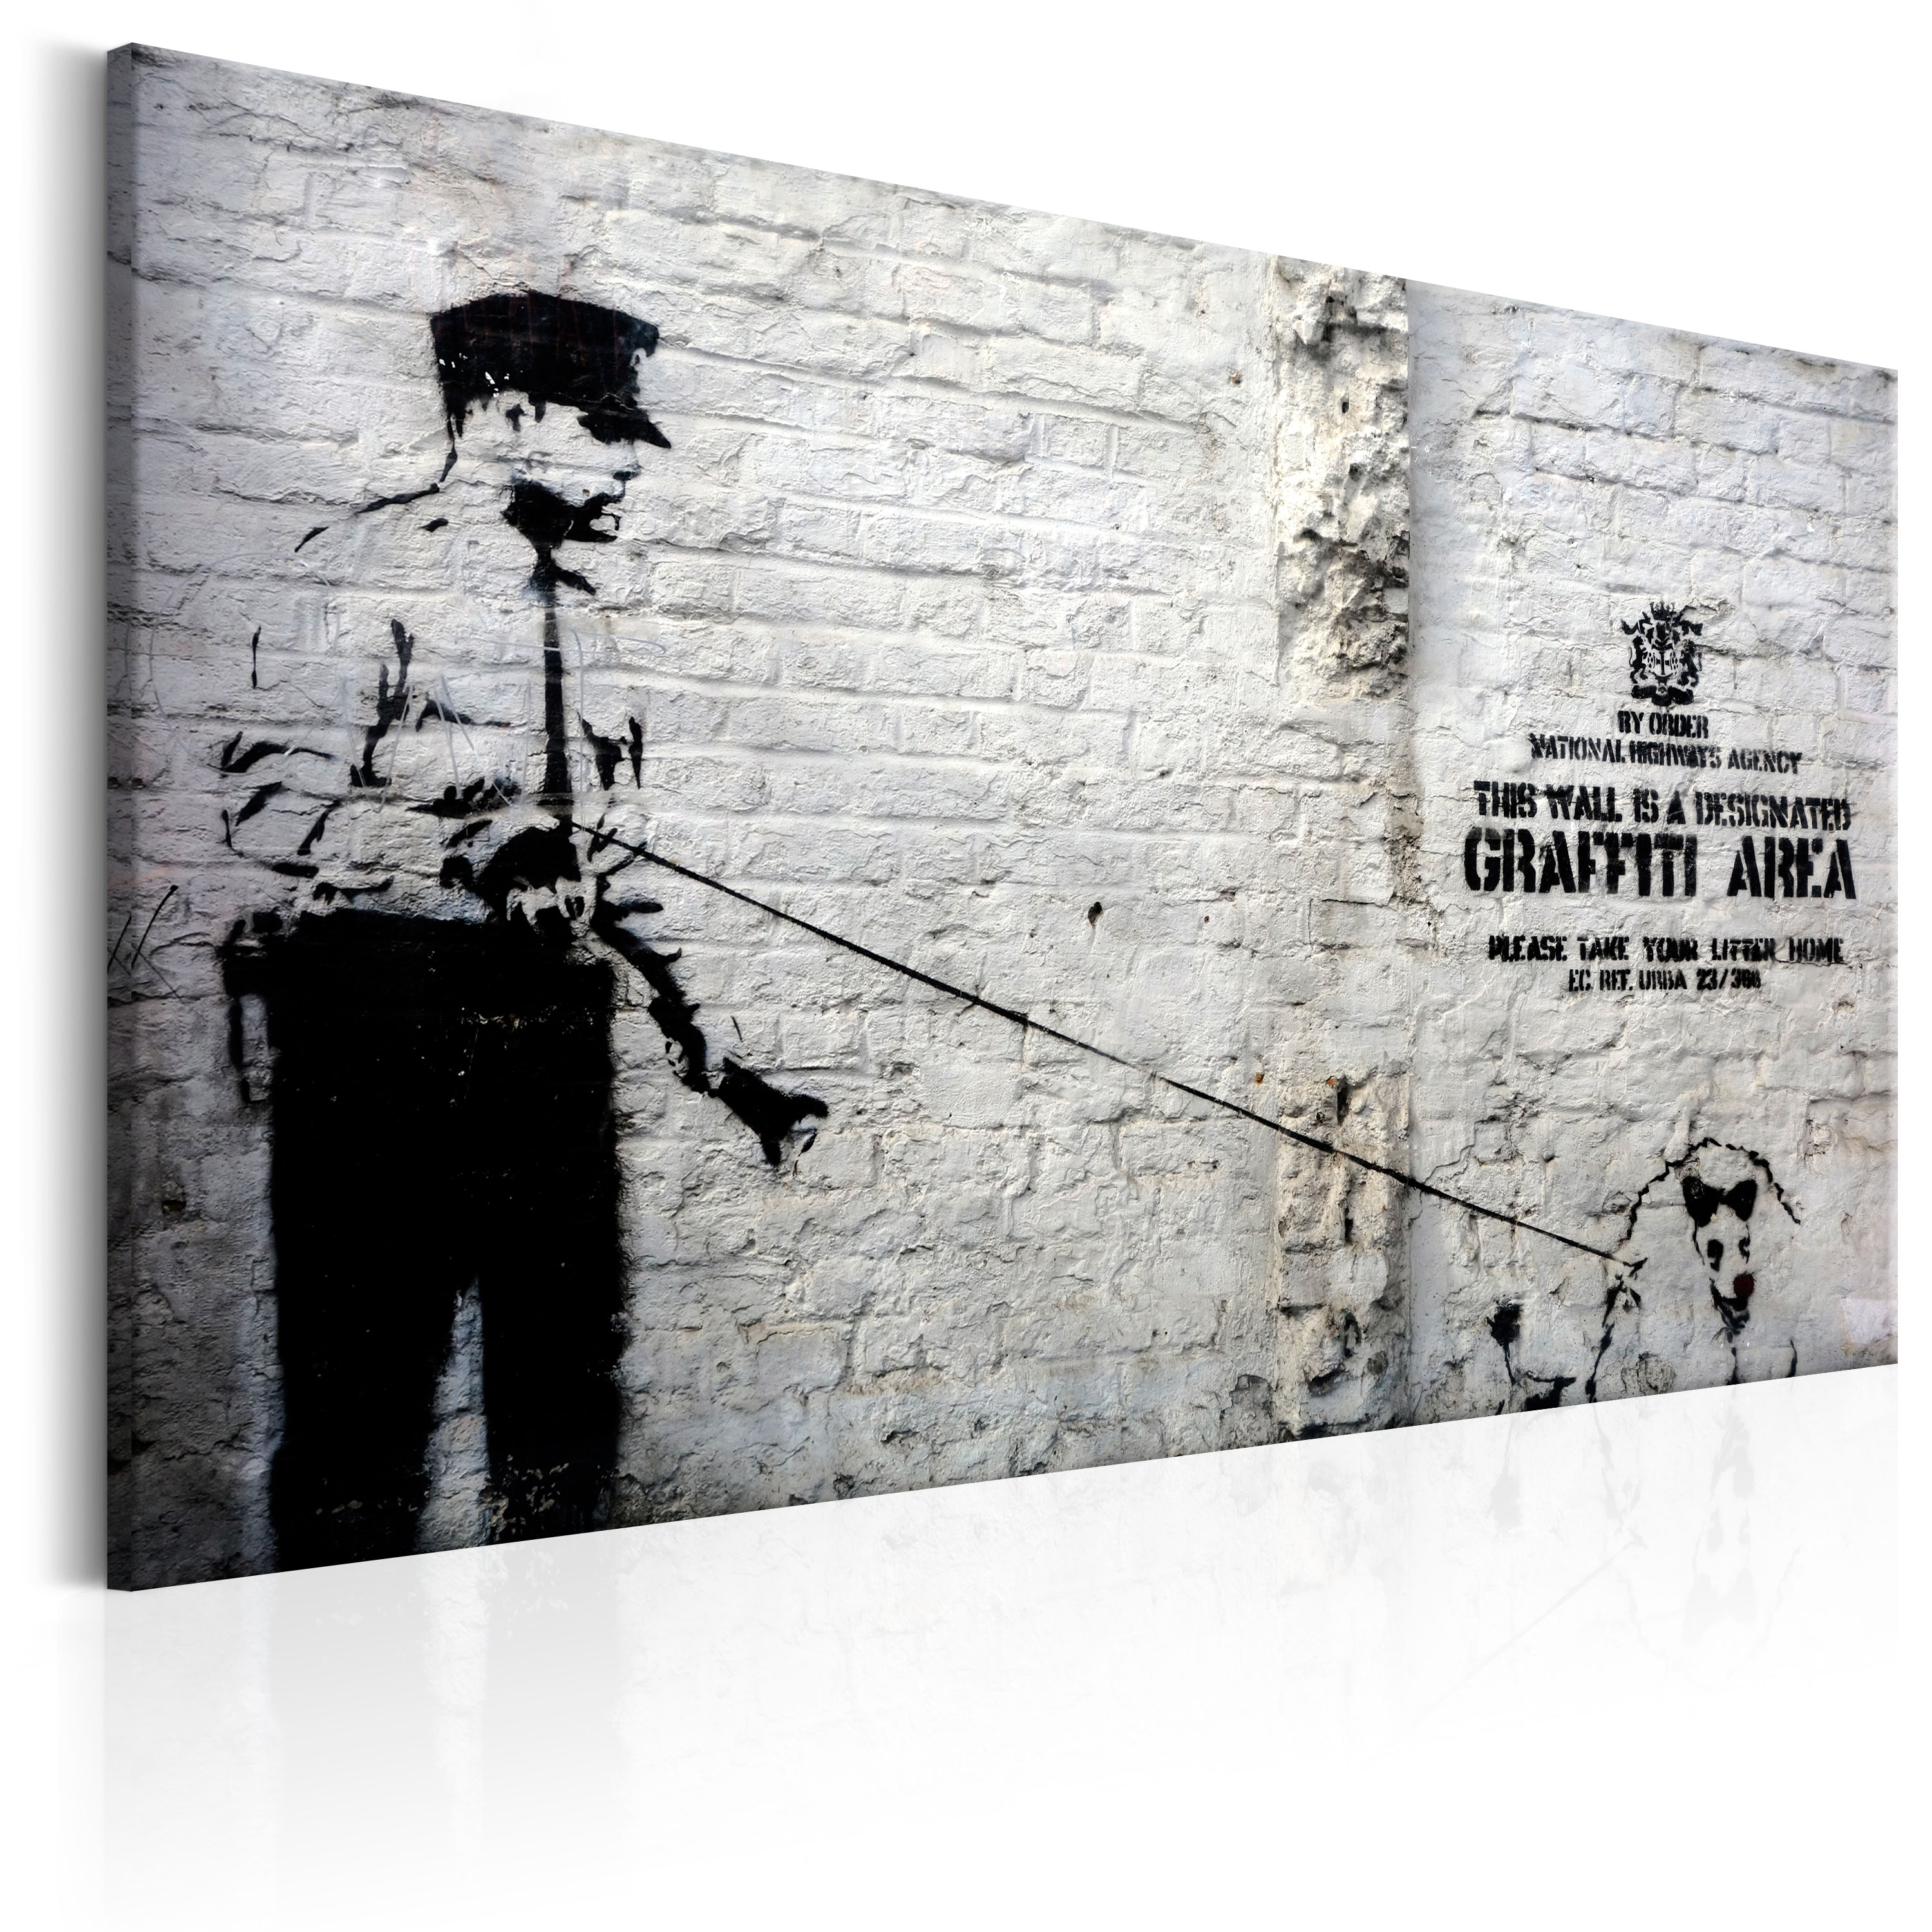 Obraz - Graffiti Area (Police and a Dog) by Banksy 90x60